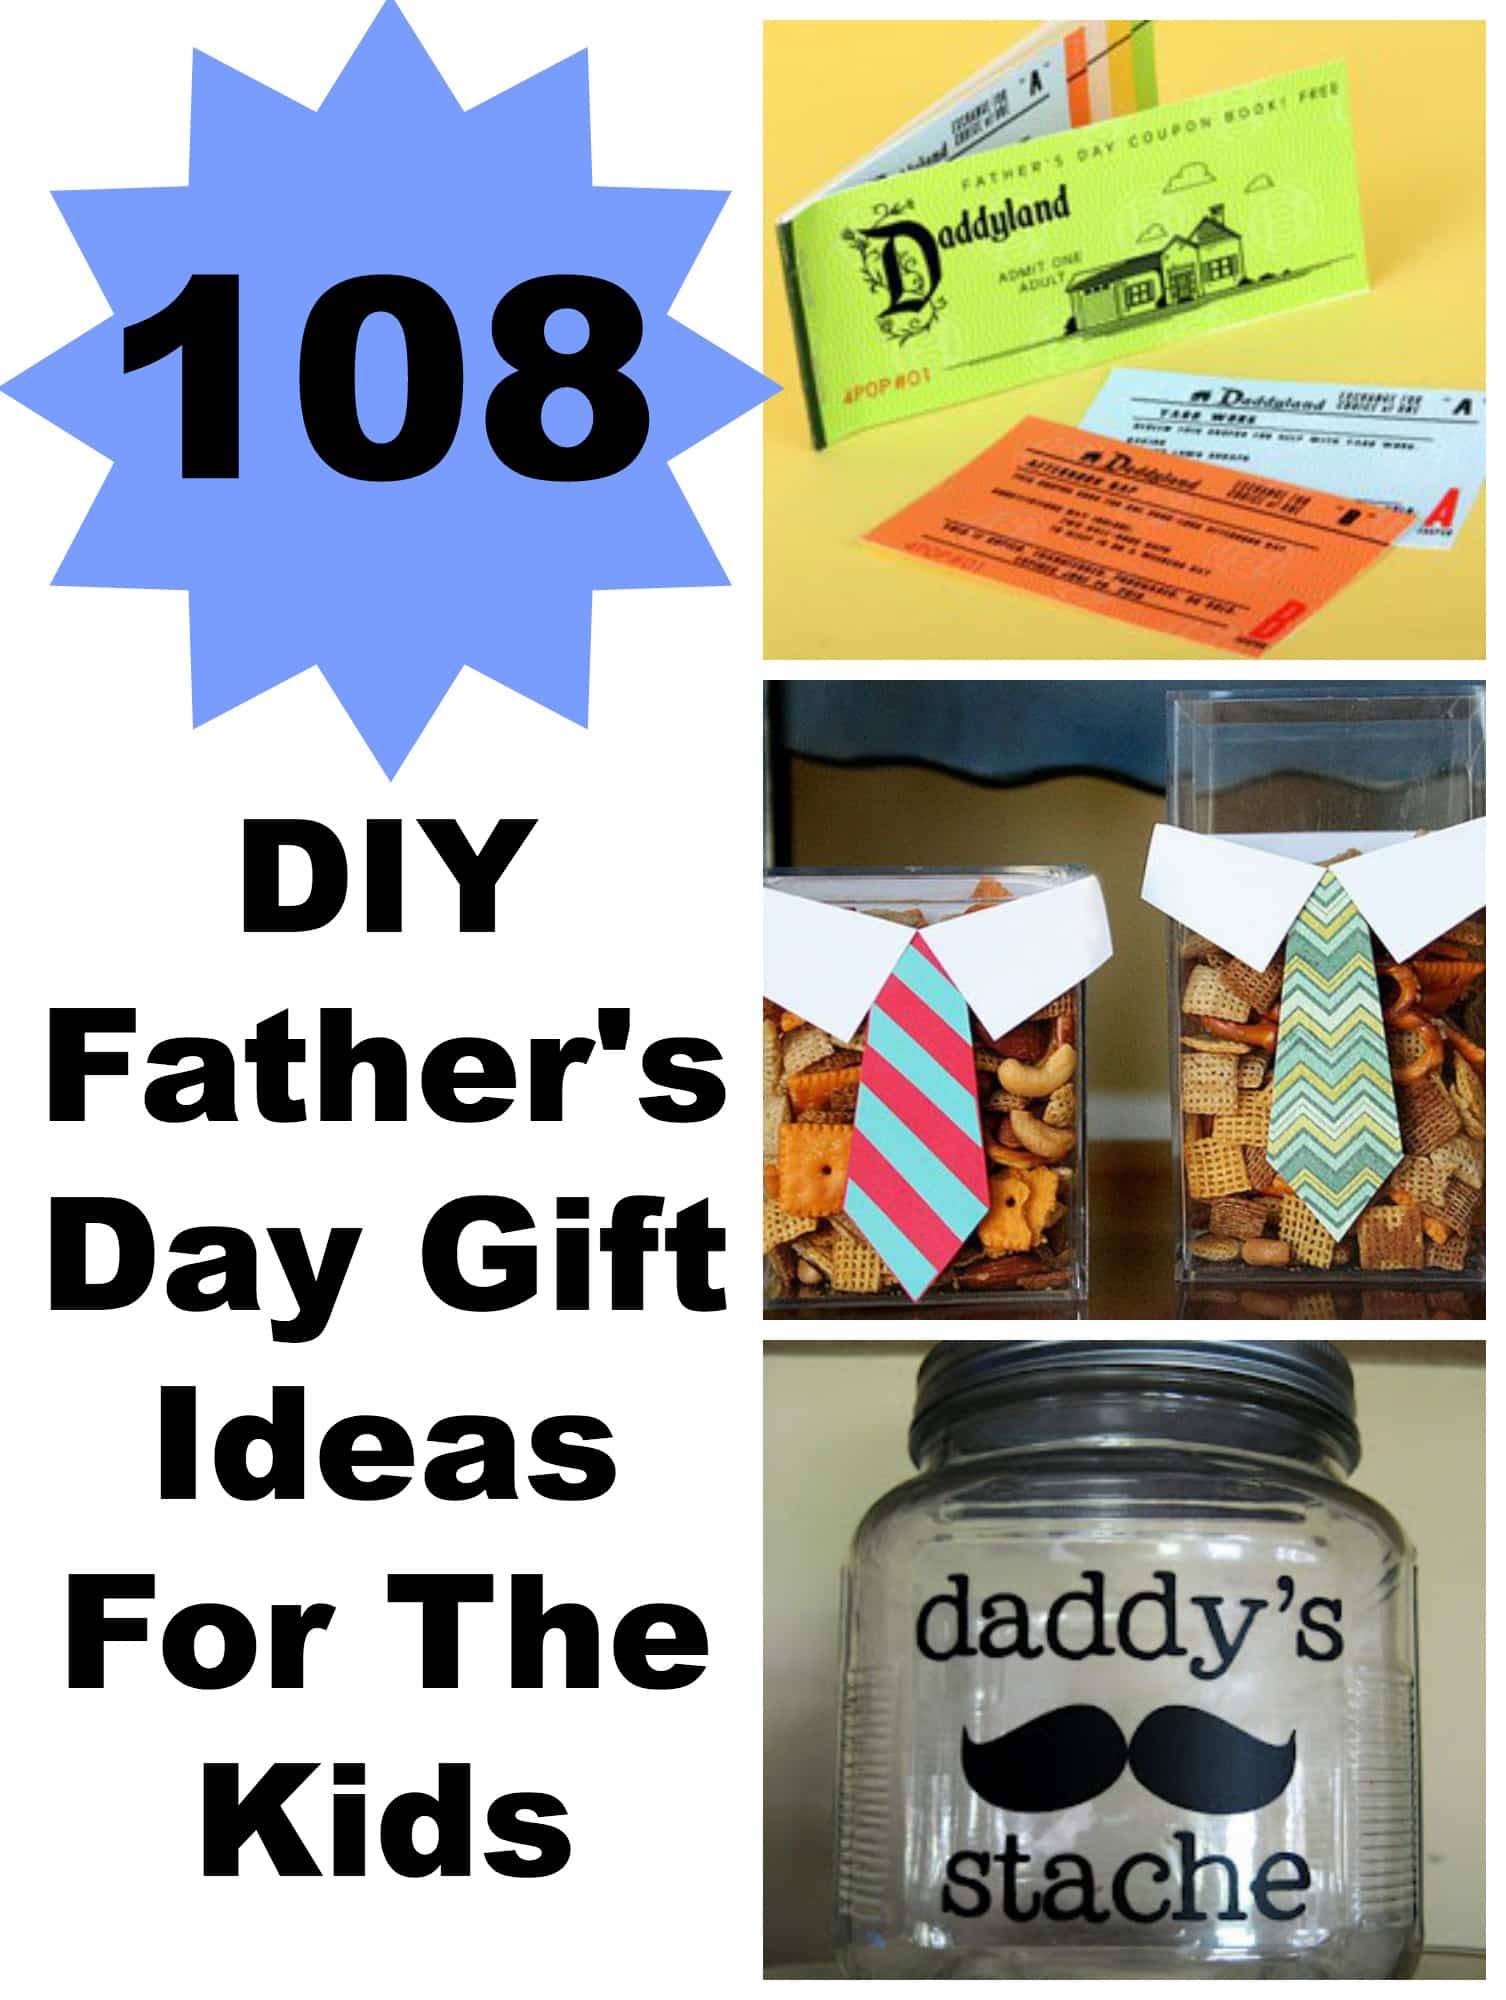 108 DIY Father\'s Day Gift Ideas For The Kids - Lady and the Blog